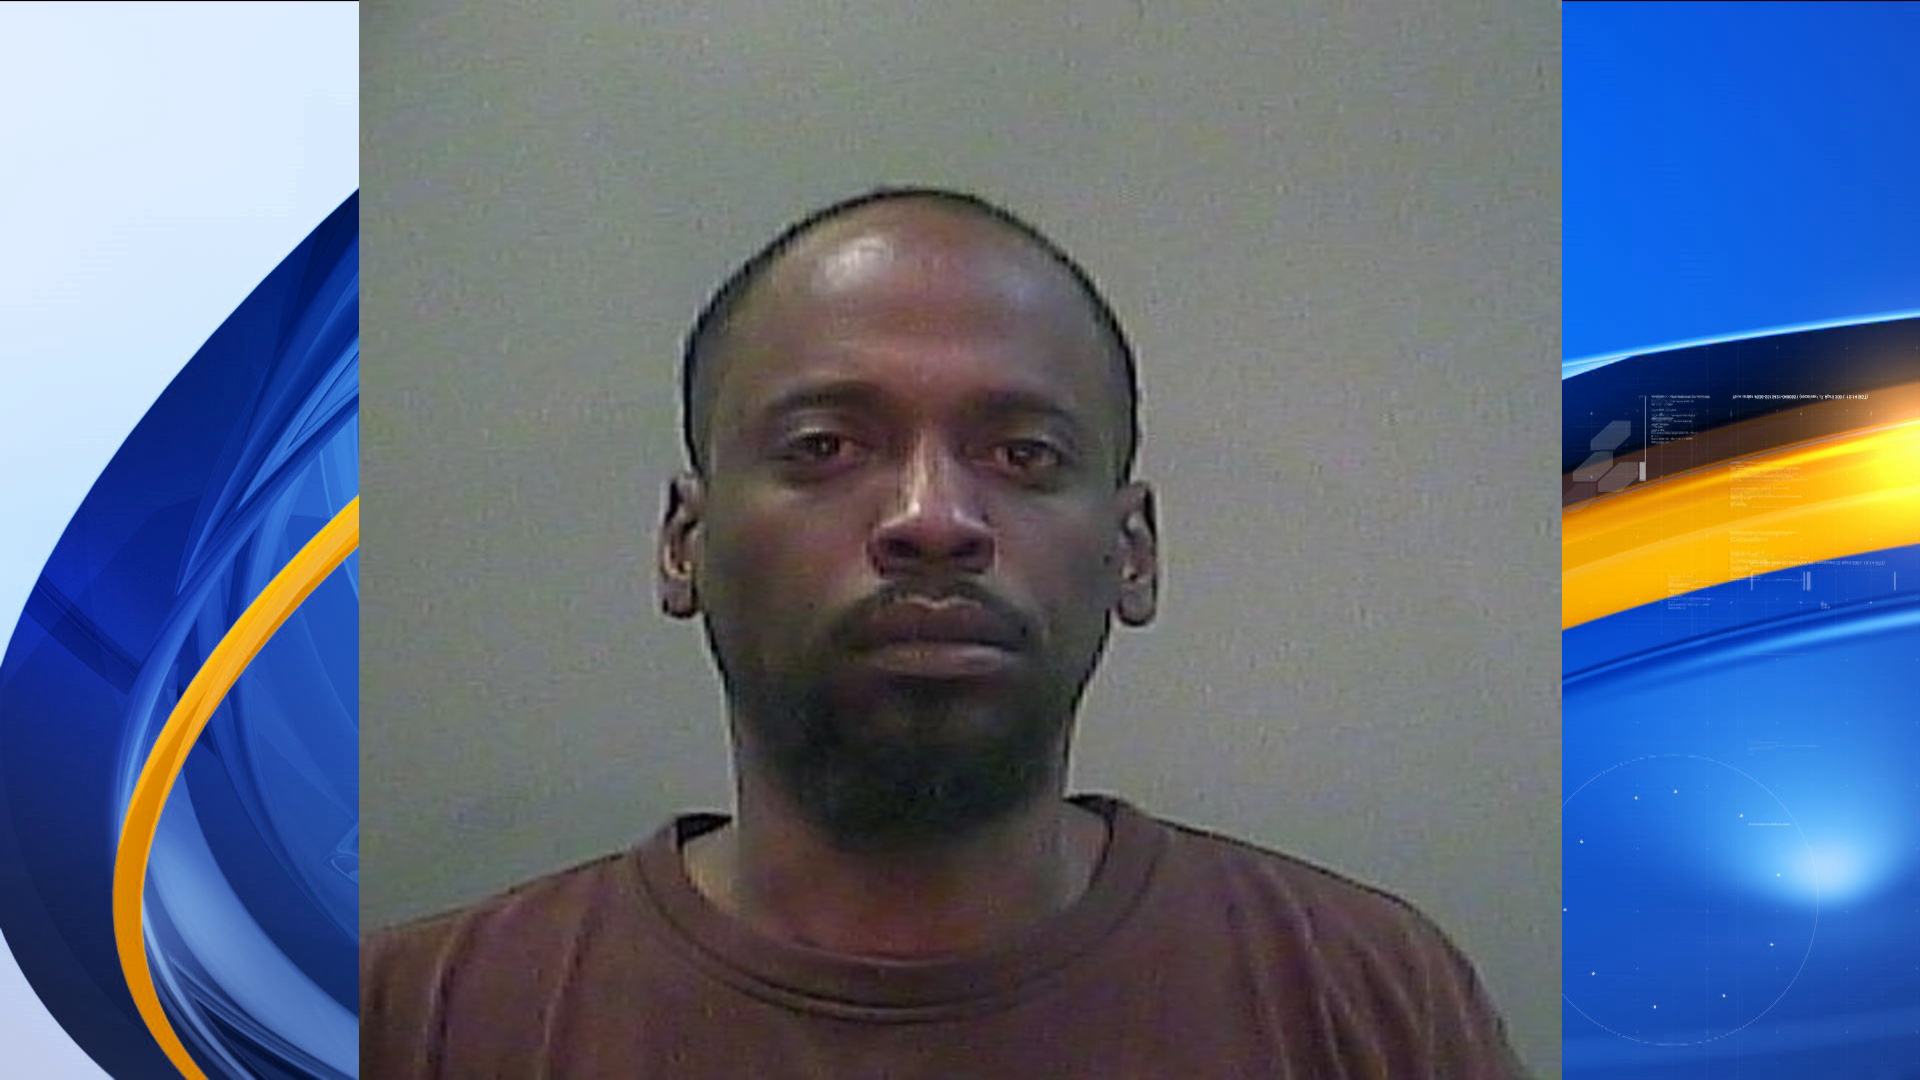 While found not guilty of first-degree rape, Rorey George Otey was found guilty of third-degree domestic violence and will be sentenced on Dec. 2.